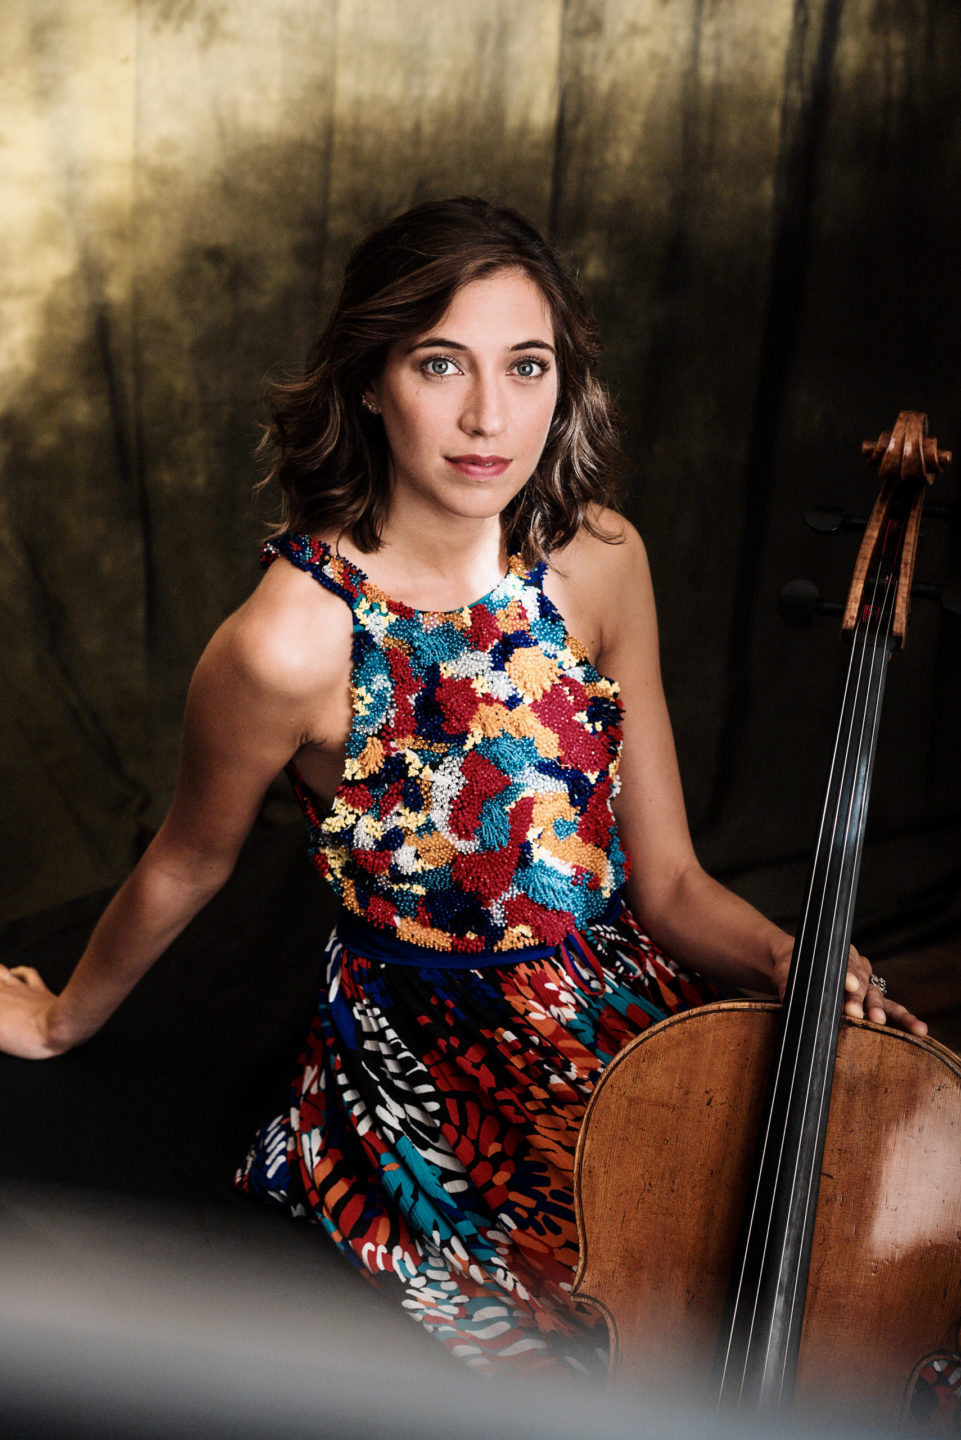 """2020 Camille Thomas, the cellist, Press photo for the release of her new album """"Voice of Hope"""" with Deutsche Grammophon"""